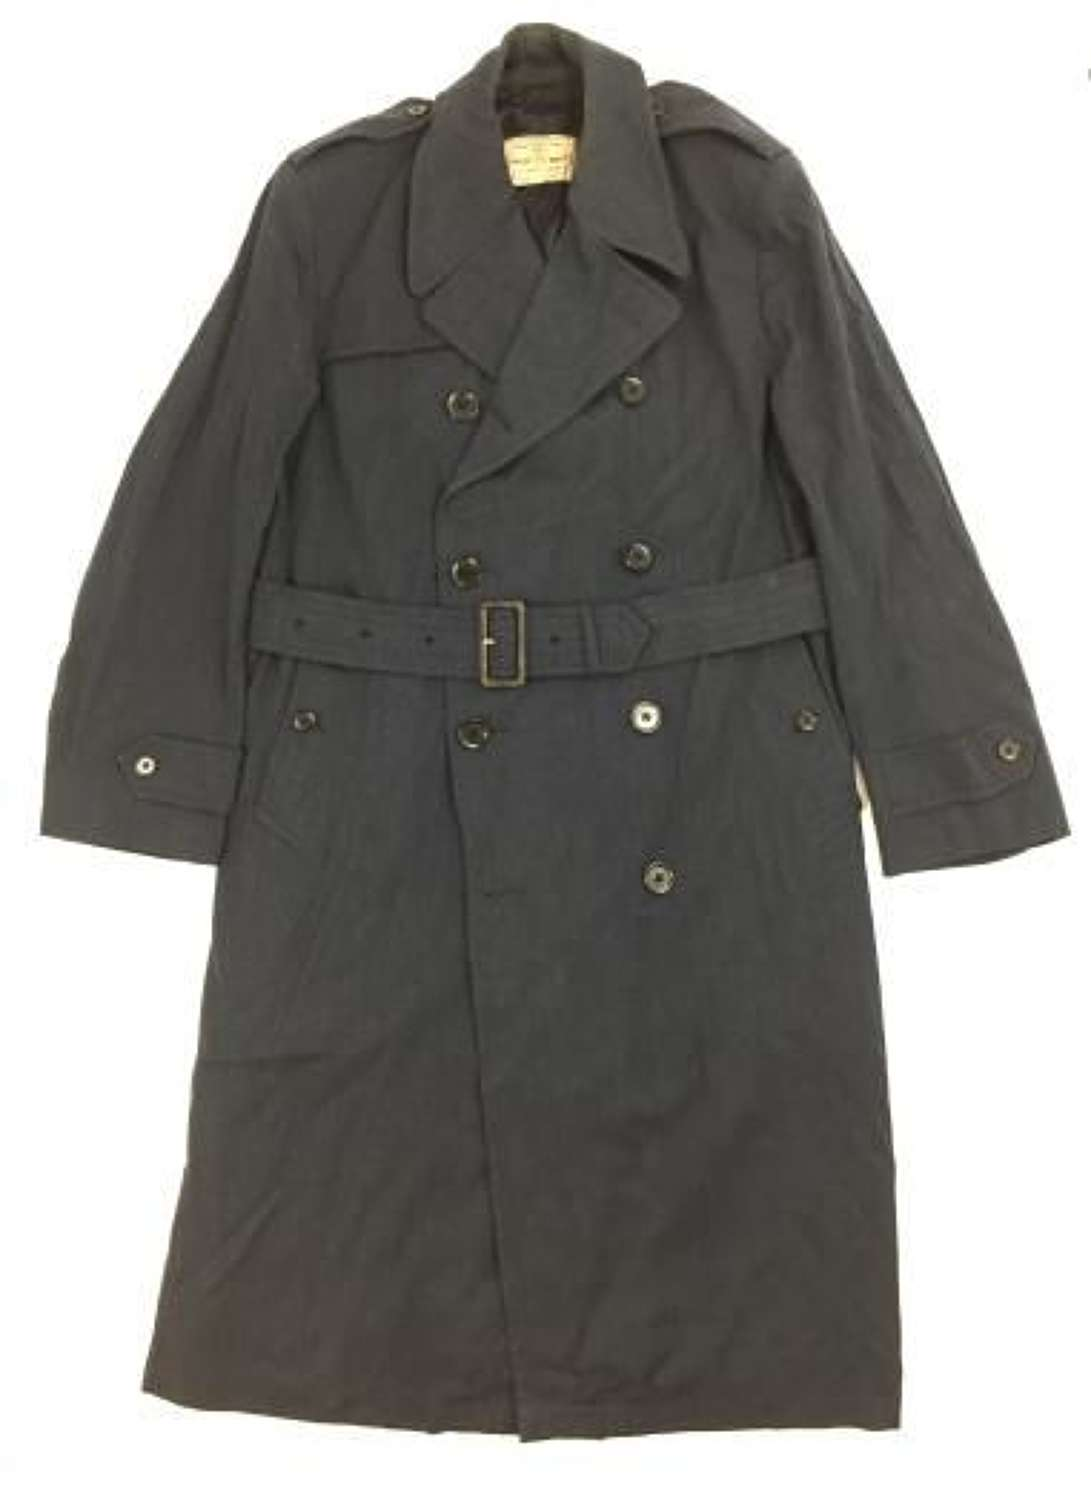 RAF Officers Raincoat to Battle of Britain Fighter Pilot Peter Parrot